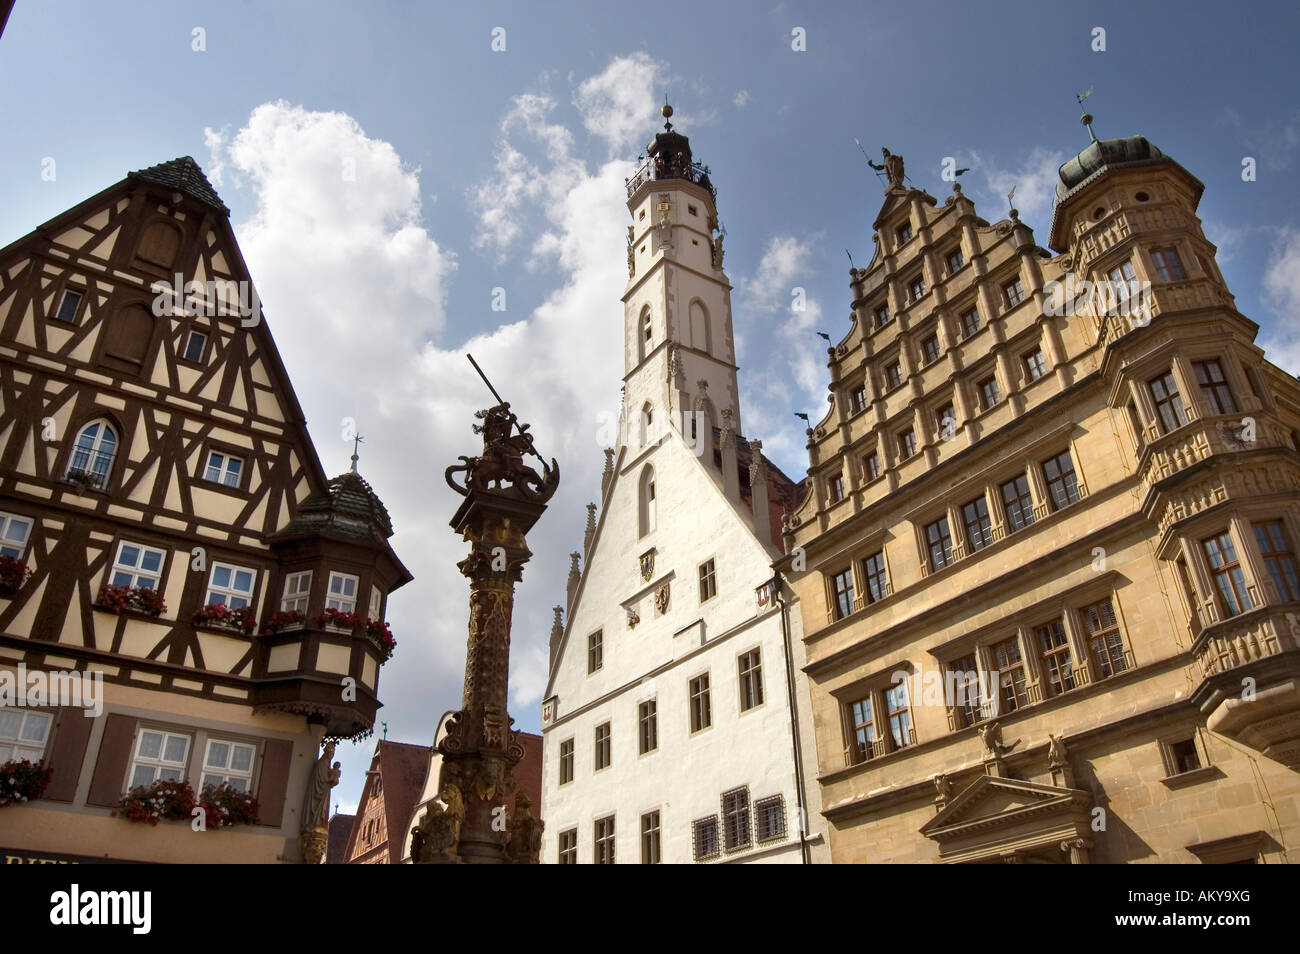 Market square, Fountain of St. George, Town Hall, Rothenburg ob der Tauber, Bavaria, Germany - Stock Image